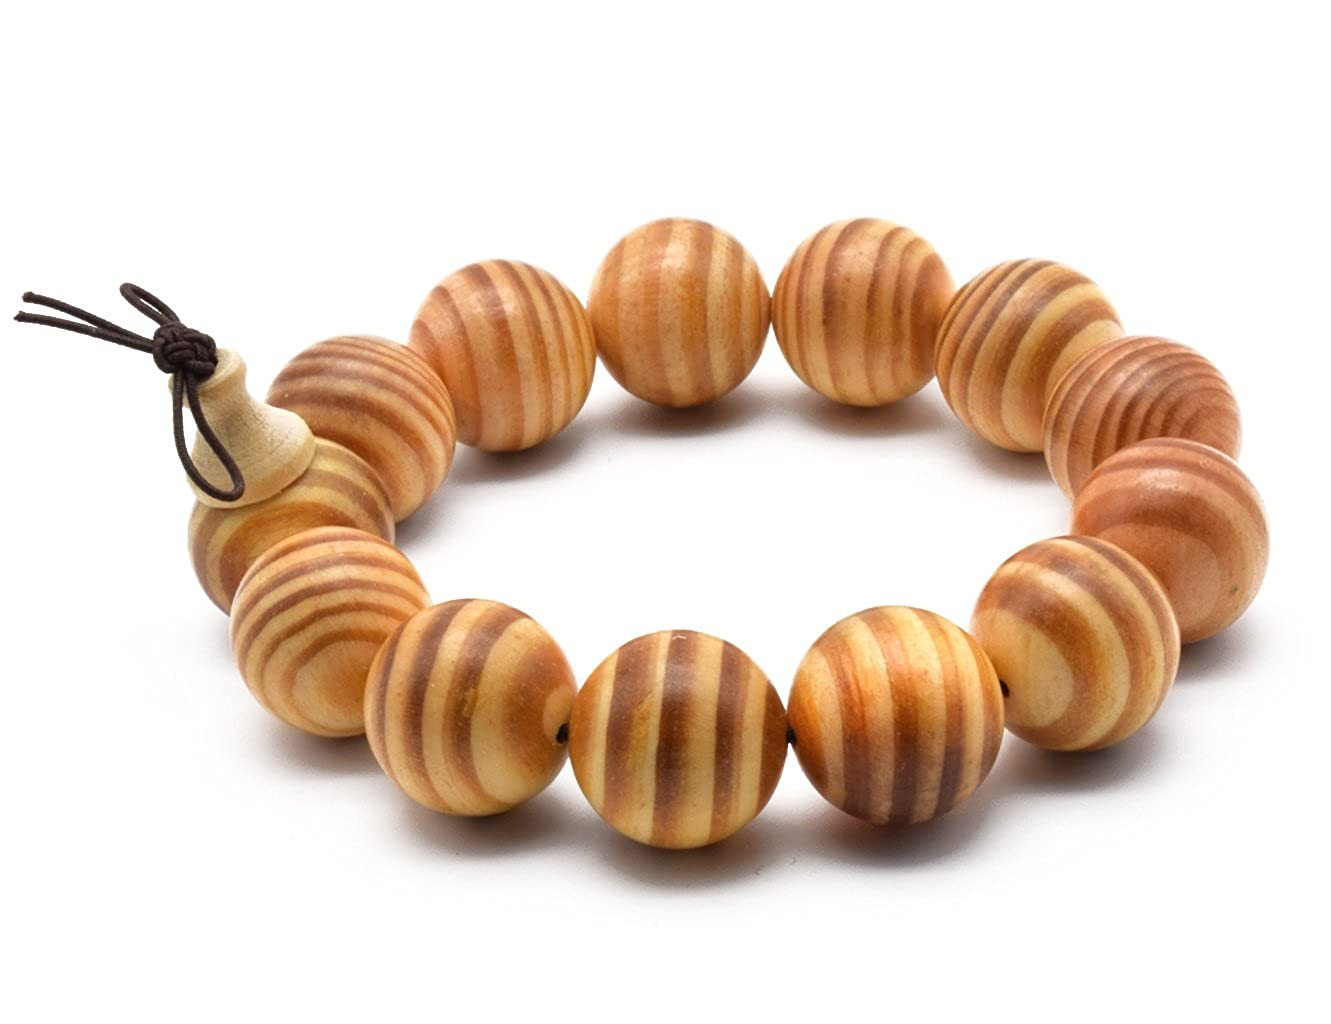 Zen Dear Unisex Natural Dammar Pine Wood Beads Tibetan Buddhist Mala Meditation Necklace Bracelet Beads ZD-DPW-00-00